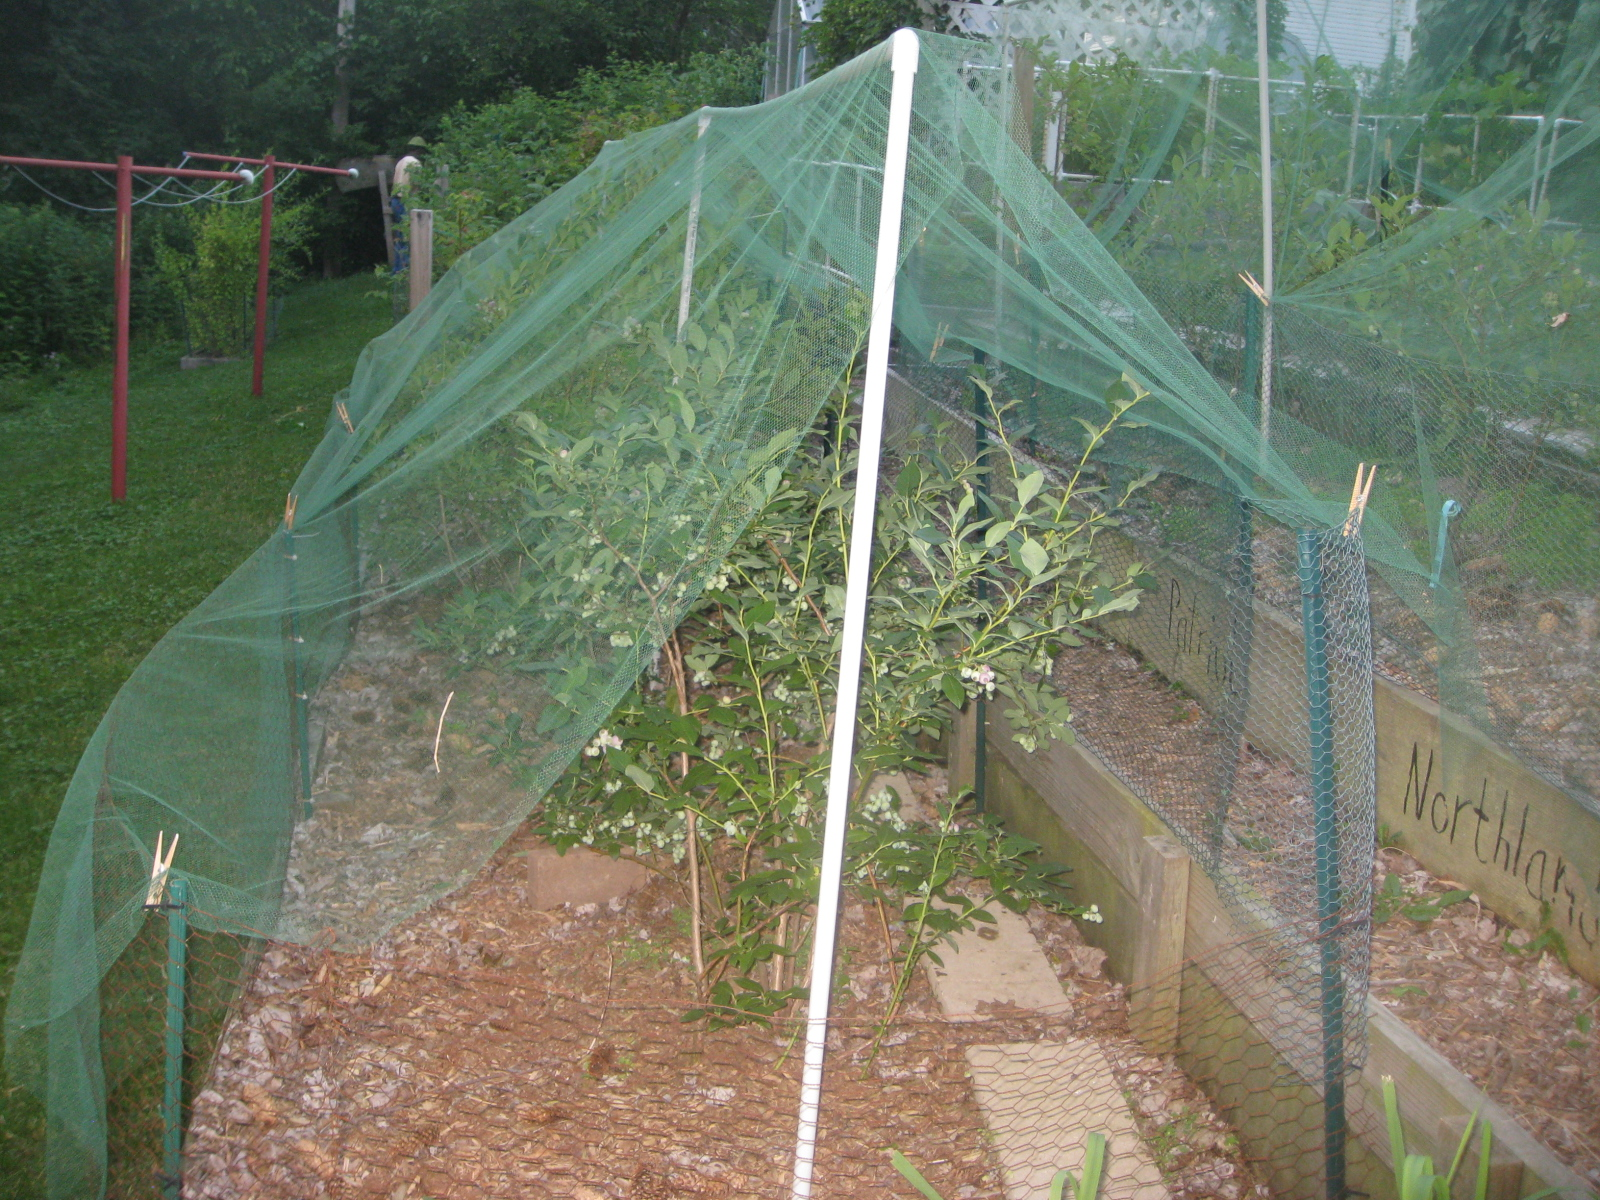 Garden Centers Bird Netting Designed To Protect Crops We Ve Never Purchased That Kind Of But Friends Recently Gave Us One Large Net Because